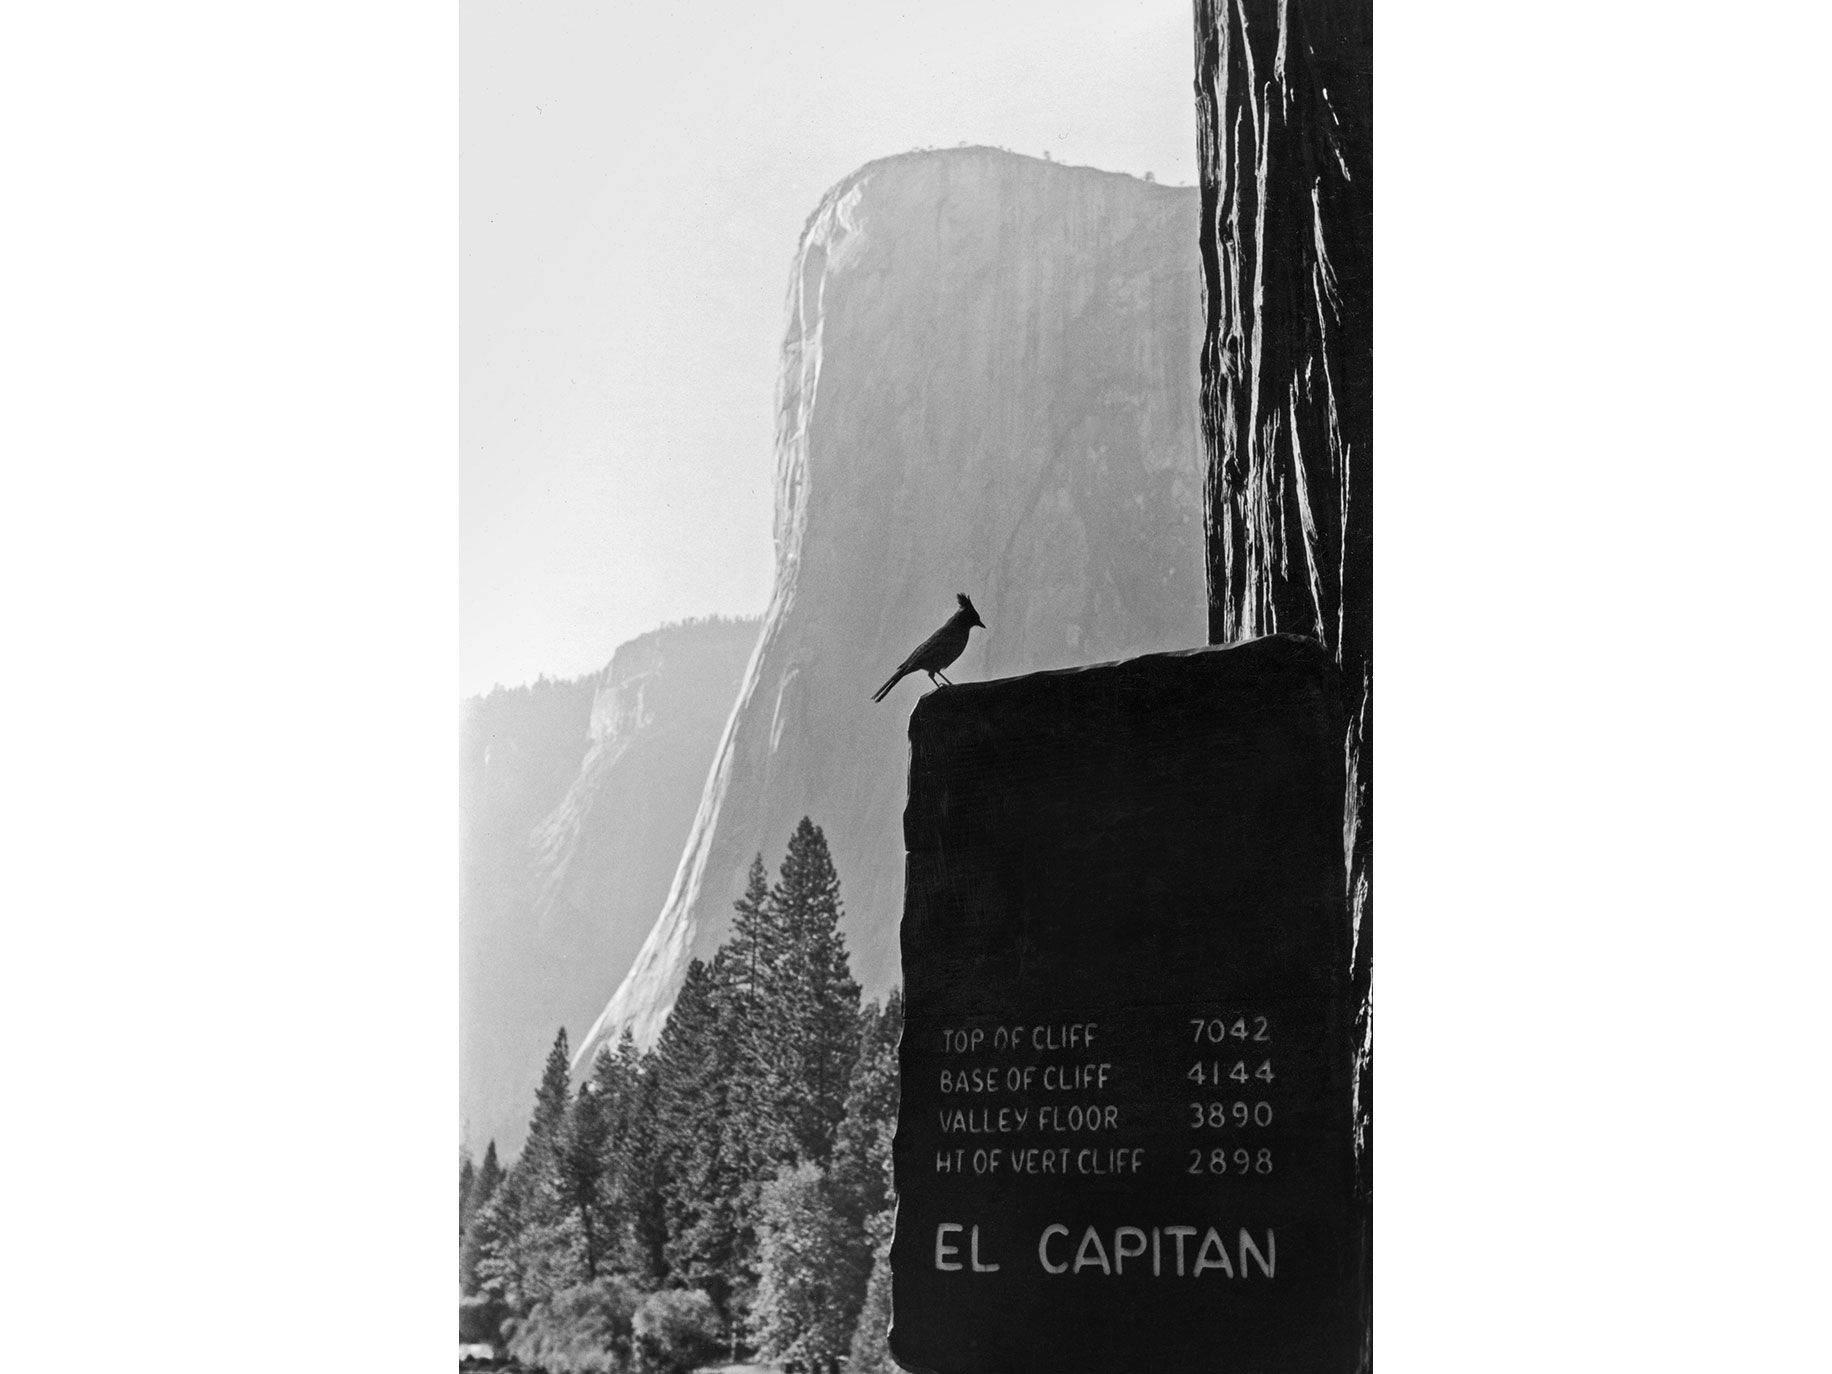 A Steller's jay on El Capitan photographed in 1960 by pioneering climber Tom Frost.